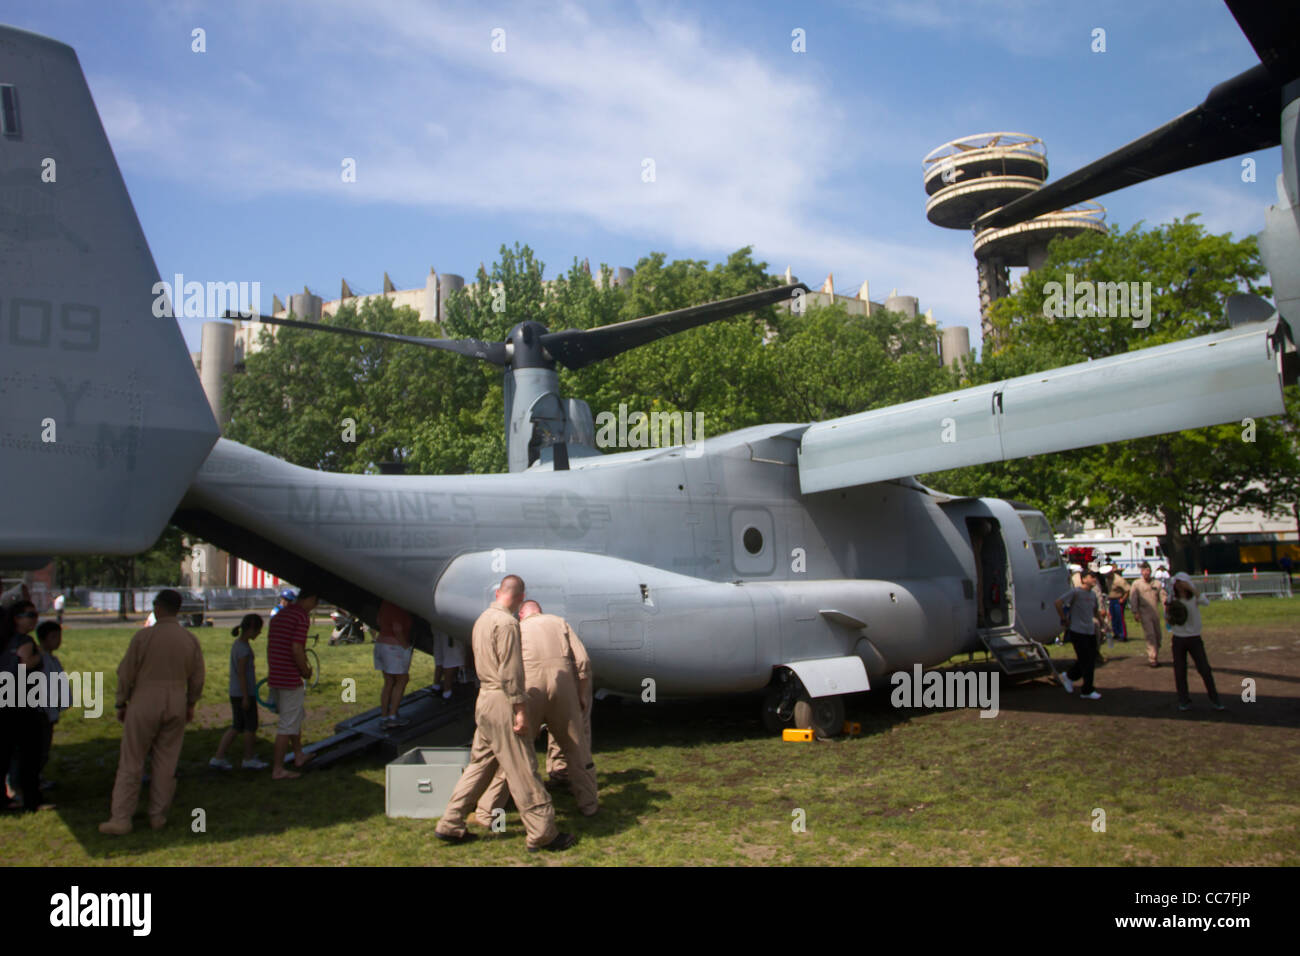 A Marine Corps V-22 Osprey open to the public for inspection at Flushing Meadow Park during Fleet Week 2011 in New - Stock Image